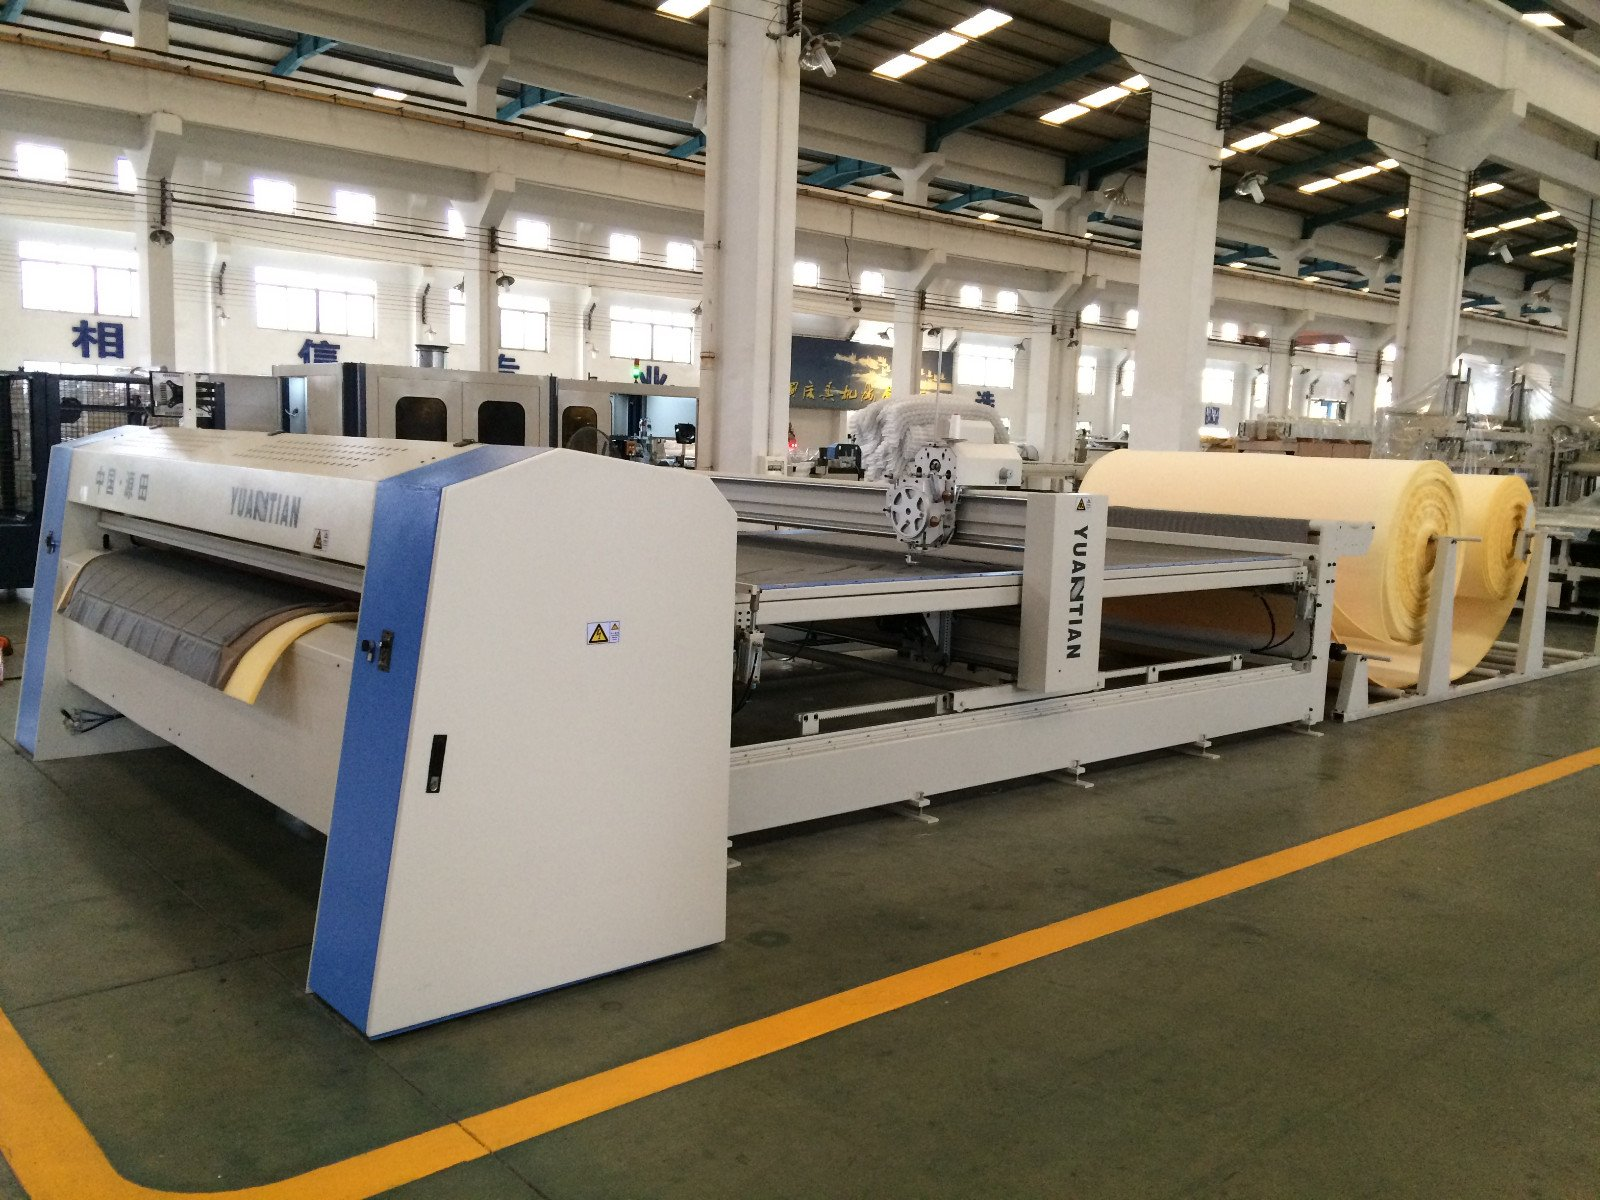 dn3a Pocket Spring Assembling Machine YUANTIAN Mattress Machines Automatic Pocket Spring Assembling Machine